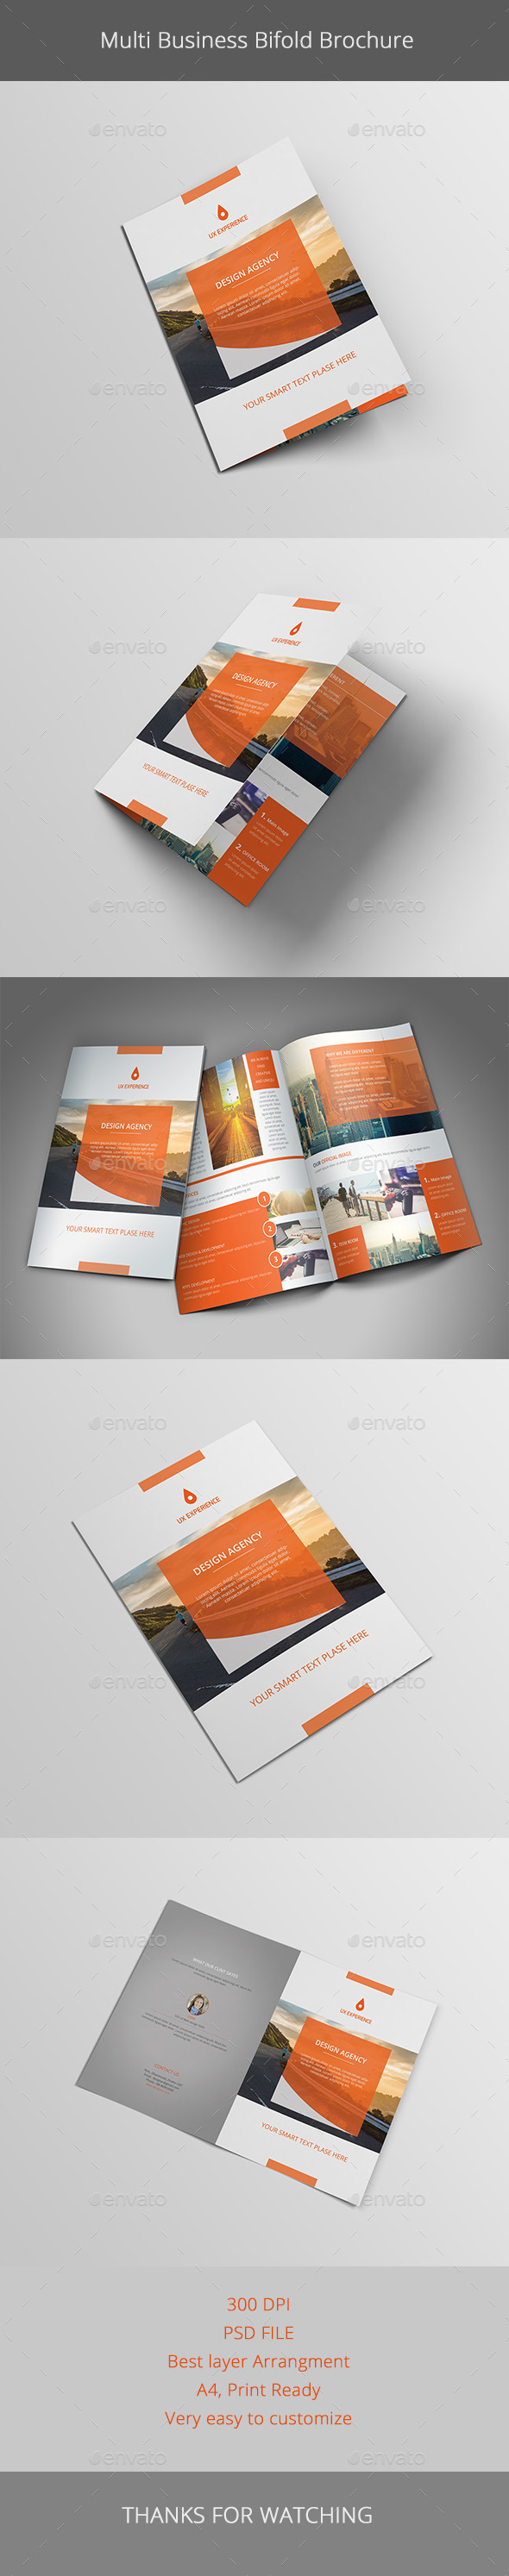 Multi Business Brochure - Brochures Print Templates